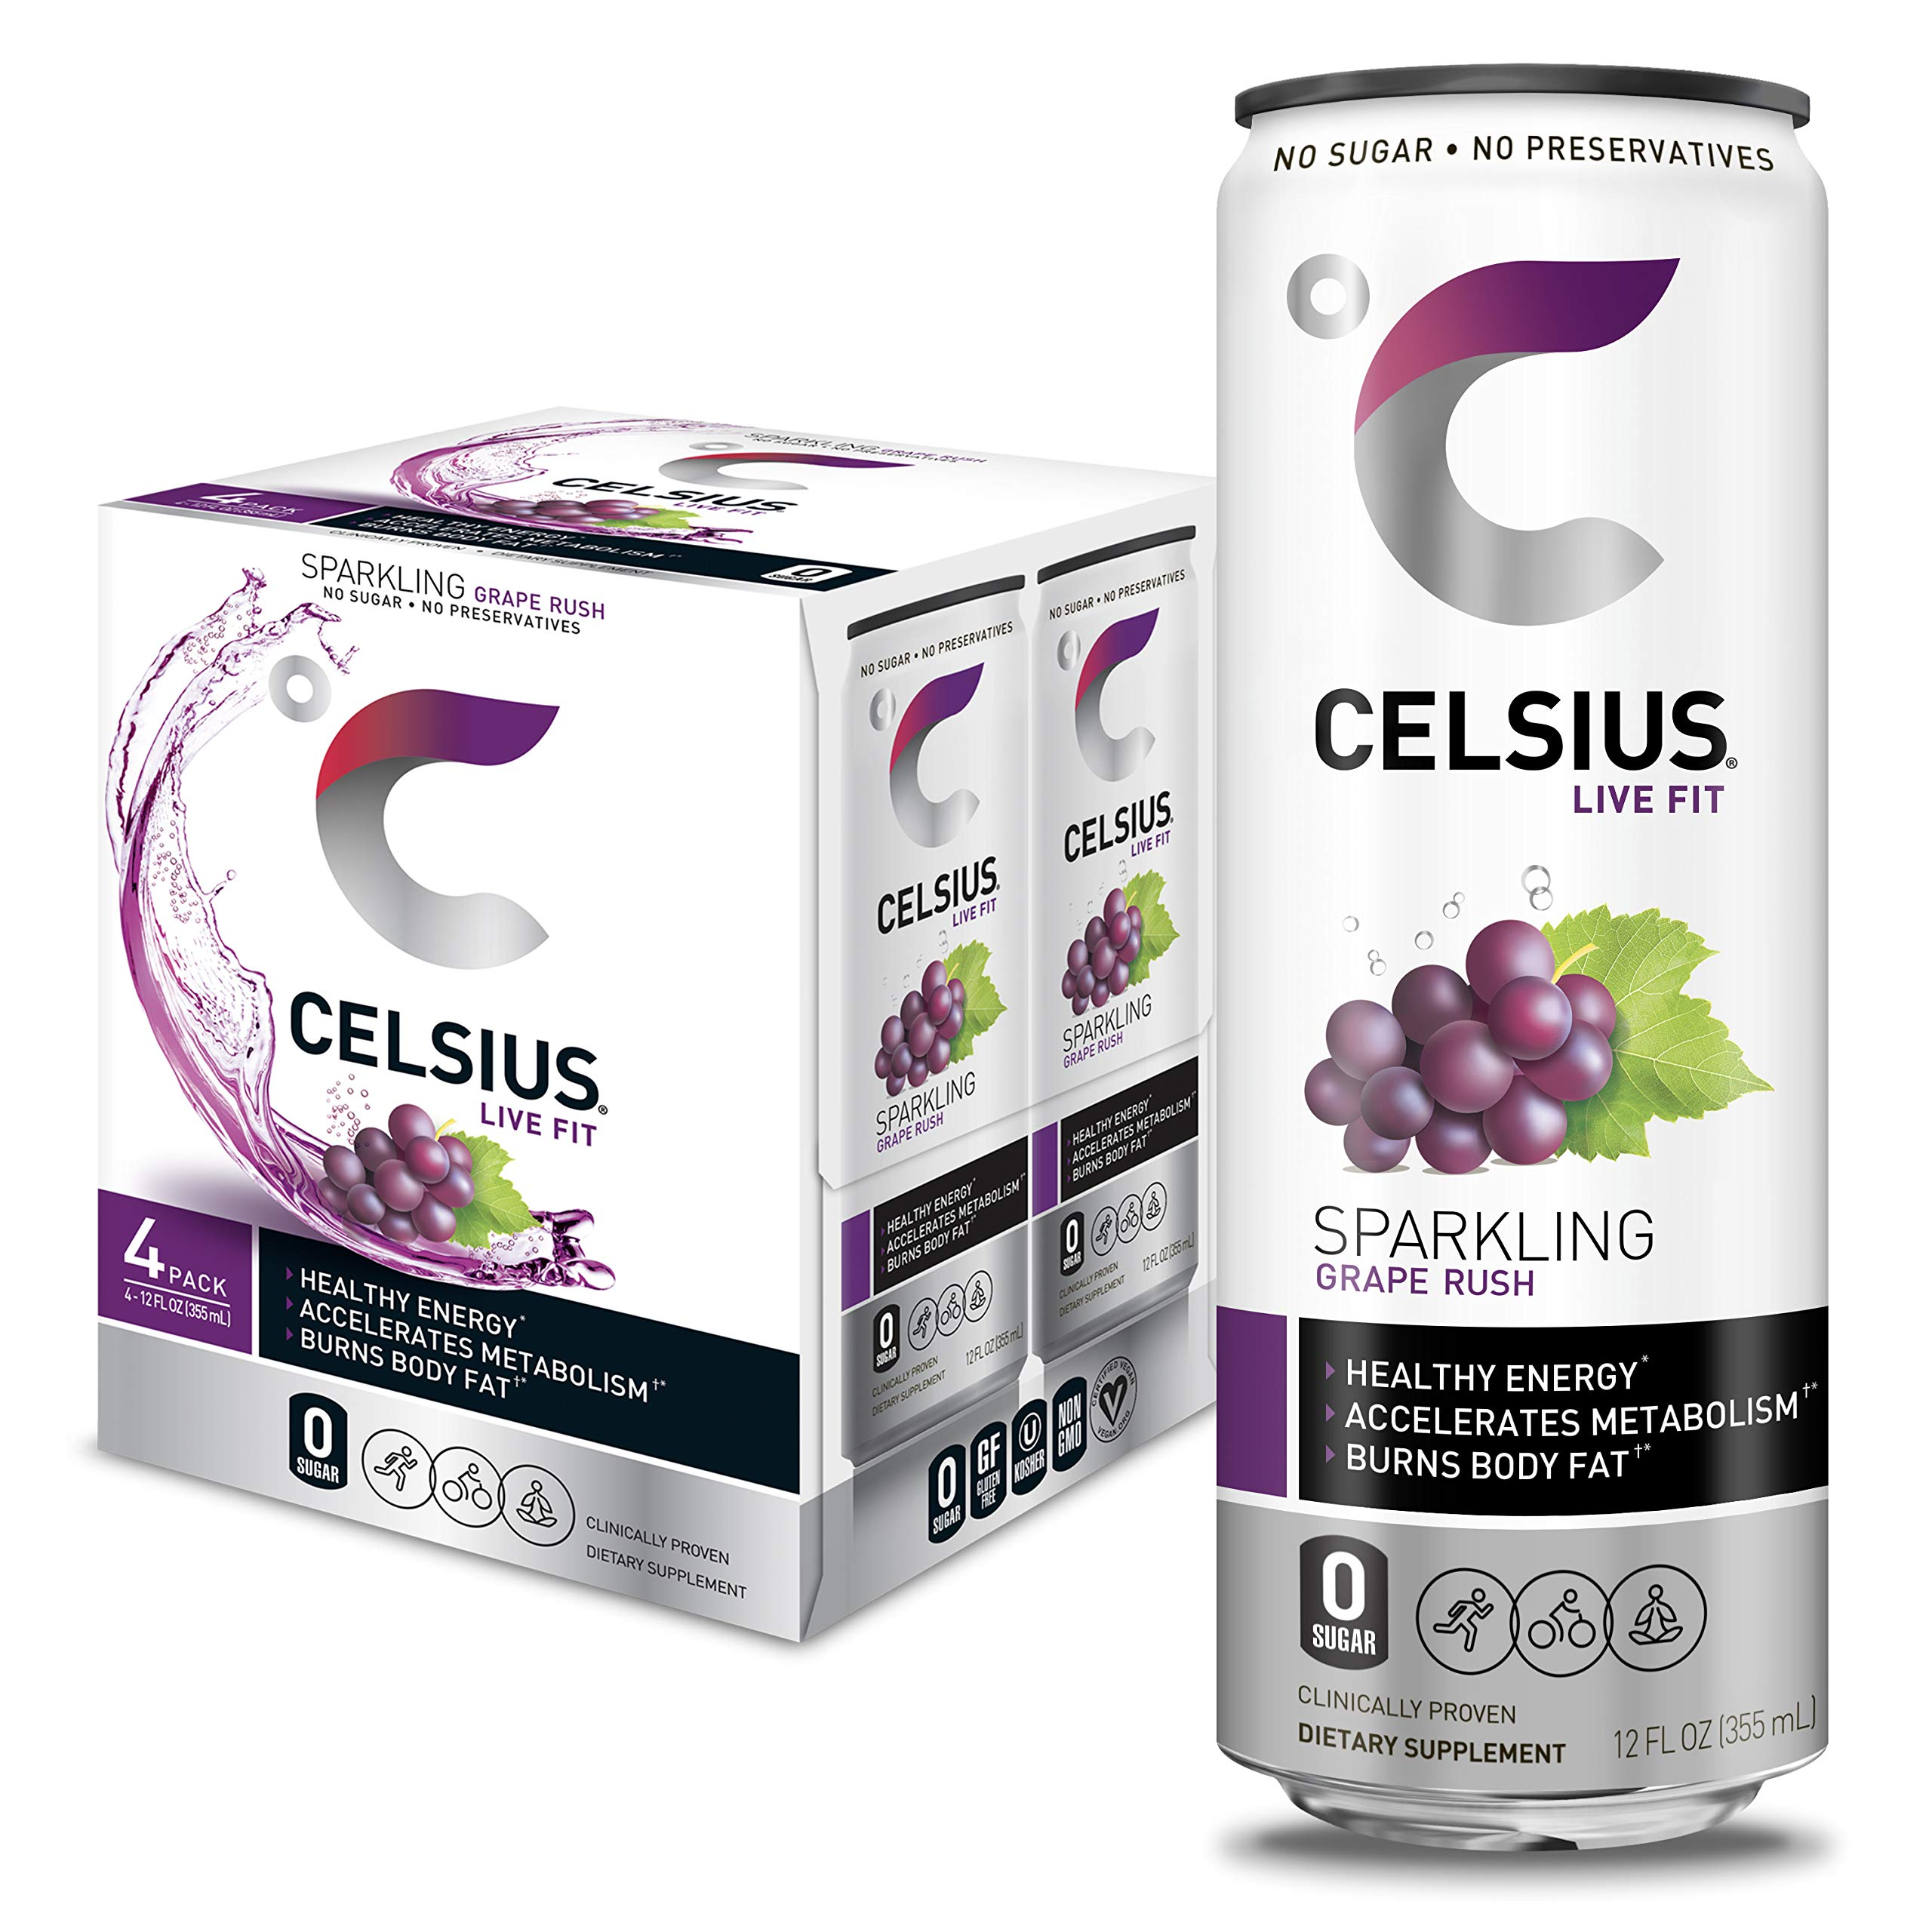 CELSIUS Sparkling Grape Rush Fitness Drink, Zero Sugar, 12oz. Slim Can (Pack of 4)